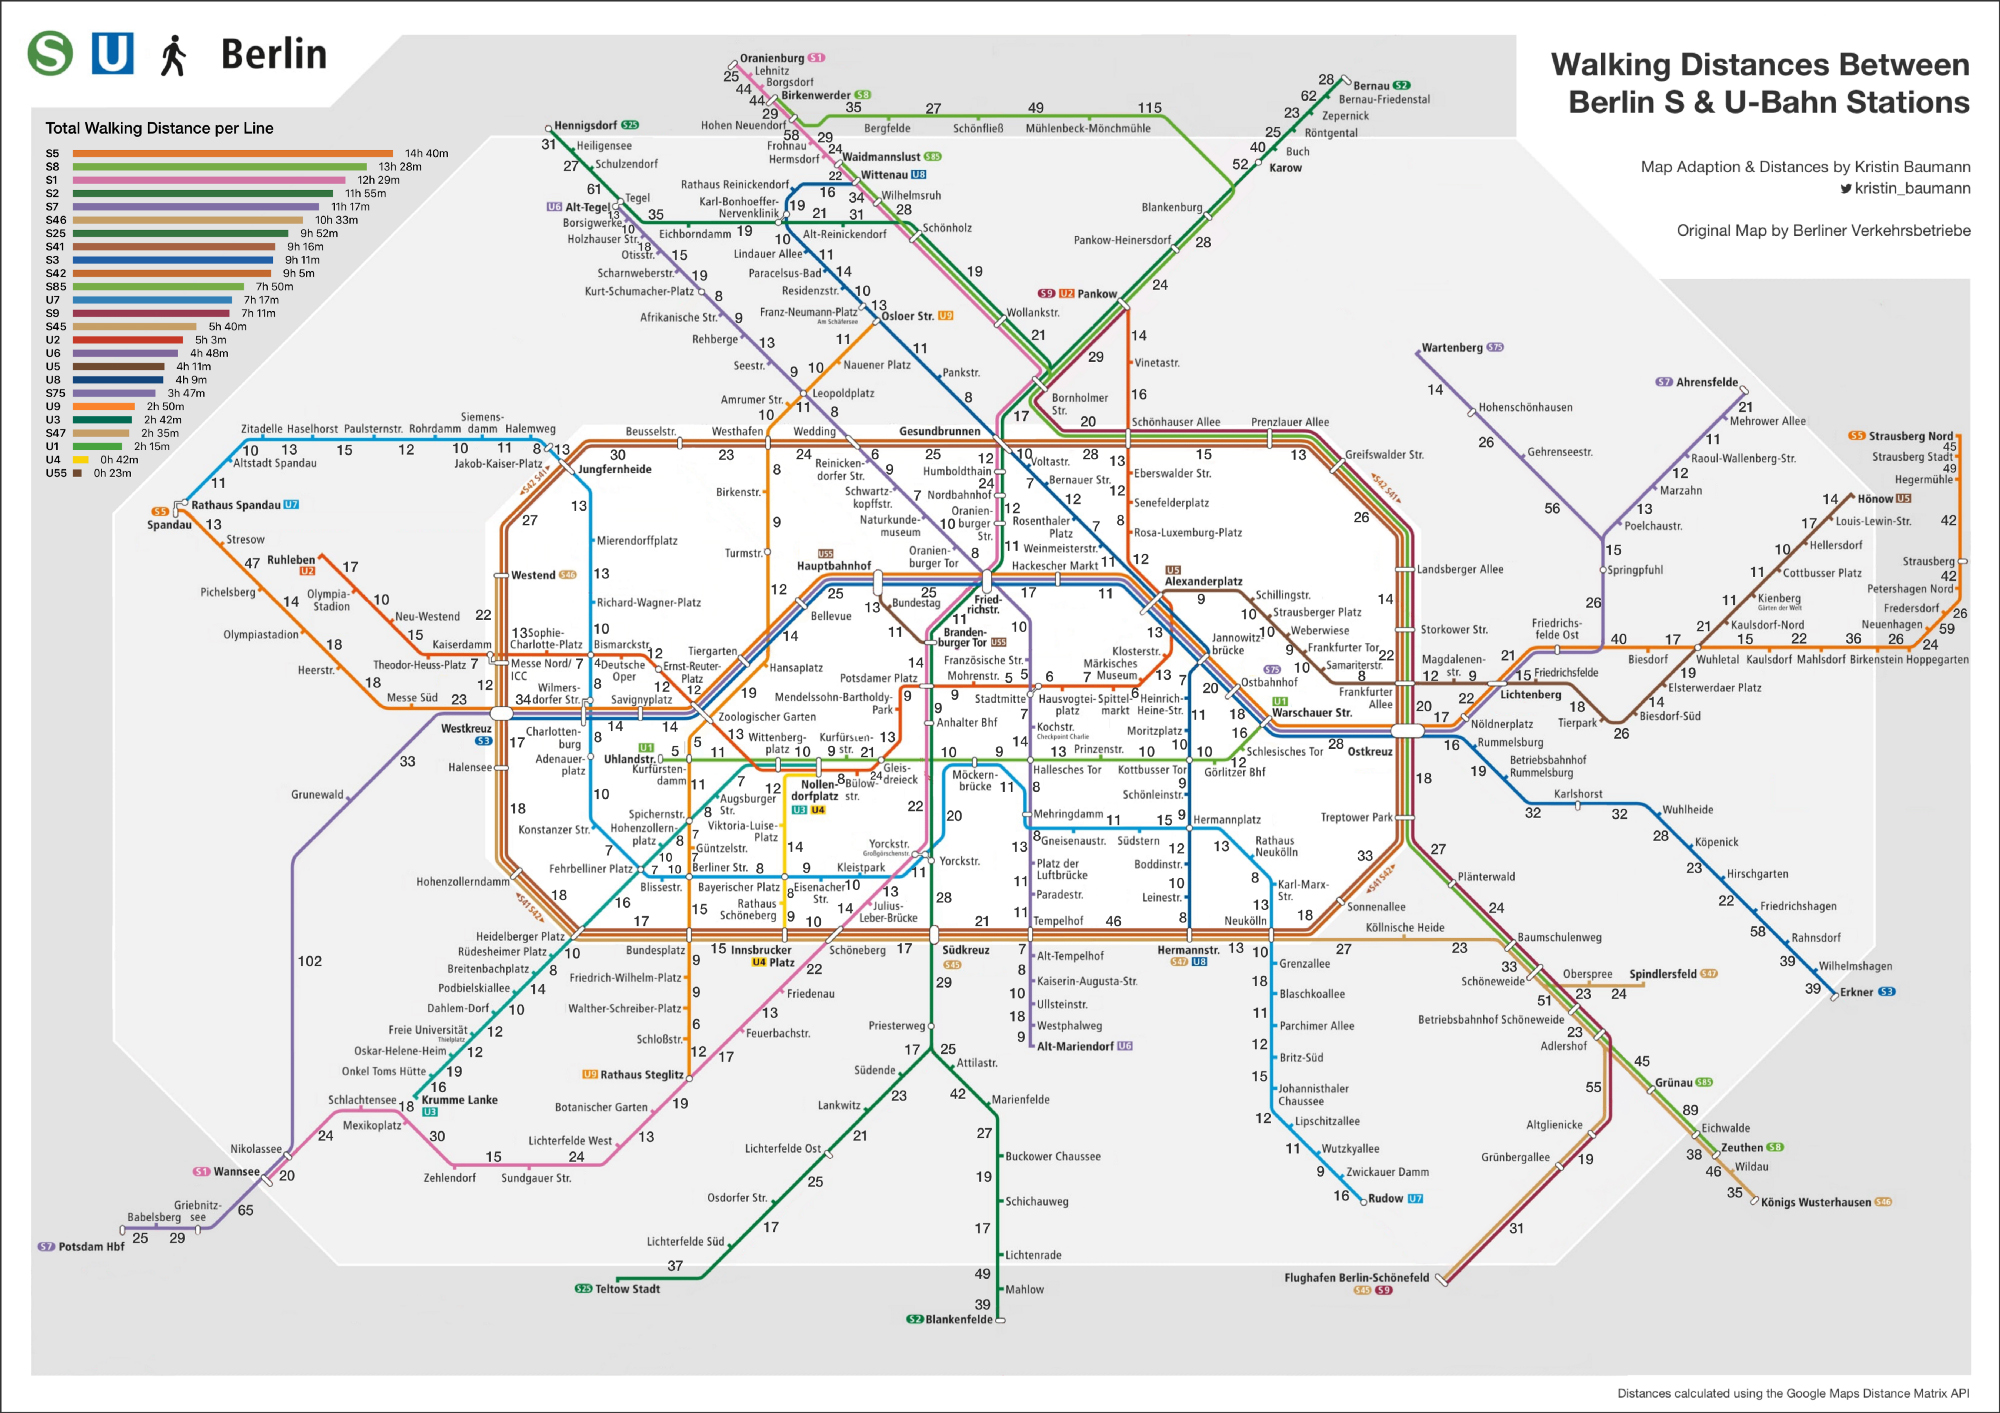 Berlin Maps S U Bahn Walking Map By Kristin Baumann Berlin Love